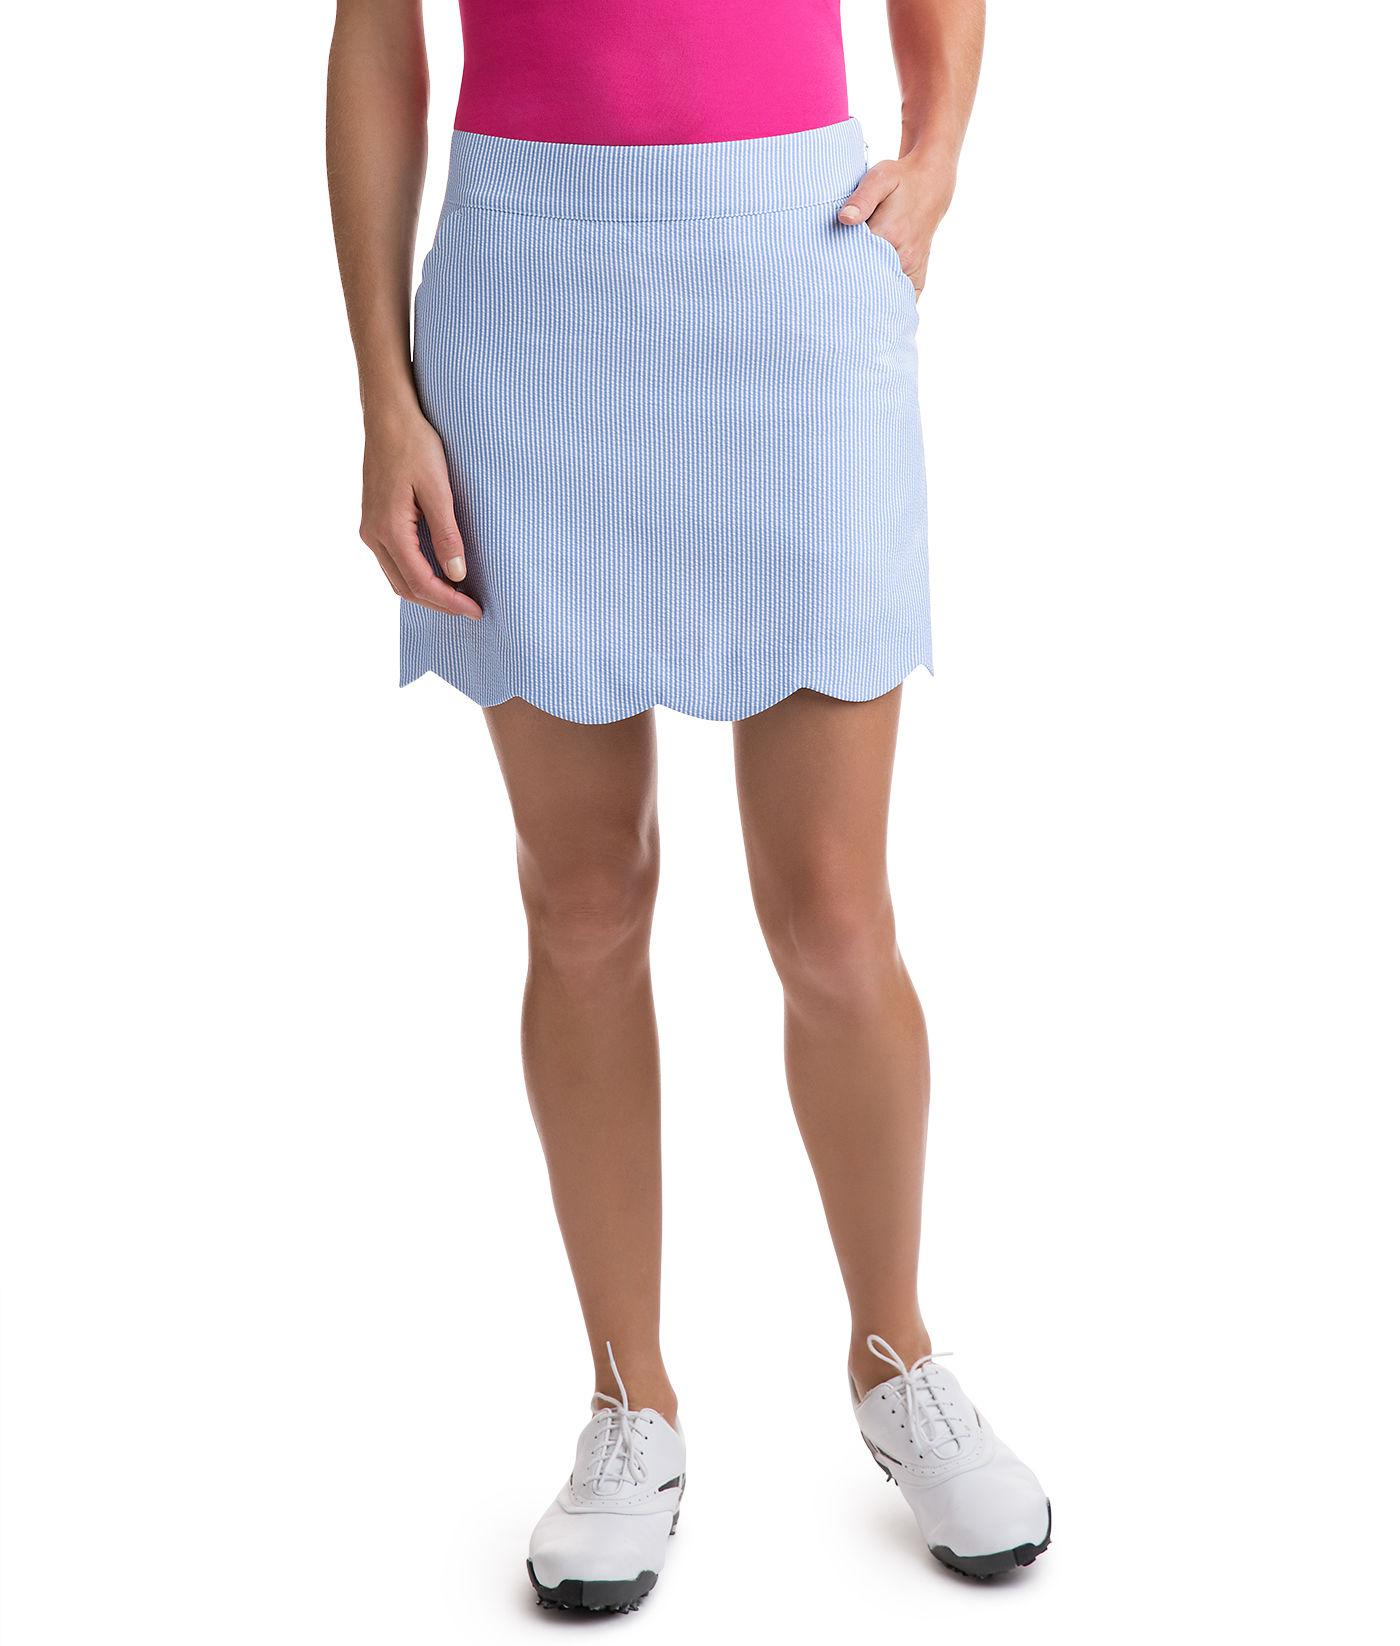 ce164a0cce Vineyard Vines Seersucker Performance Golf Skort in Blue - Lyst